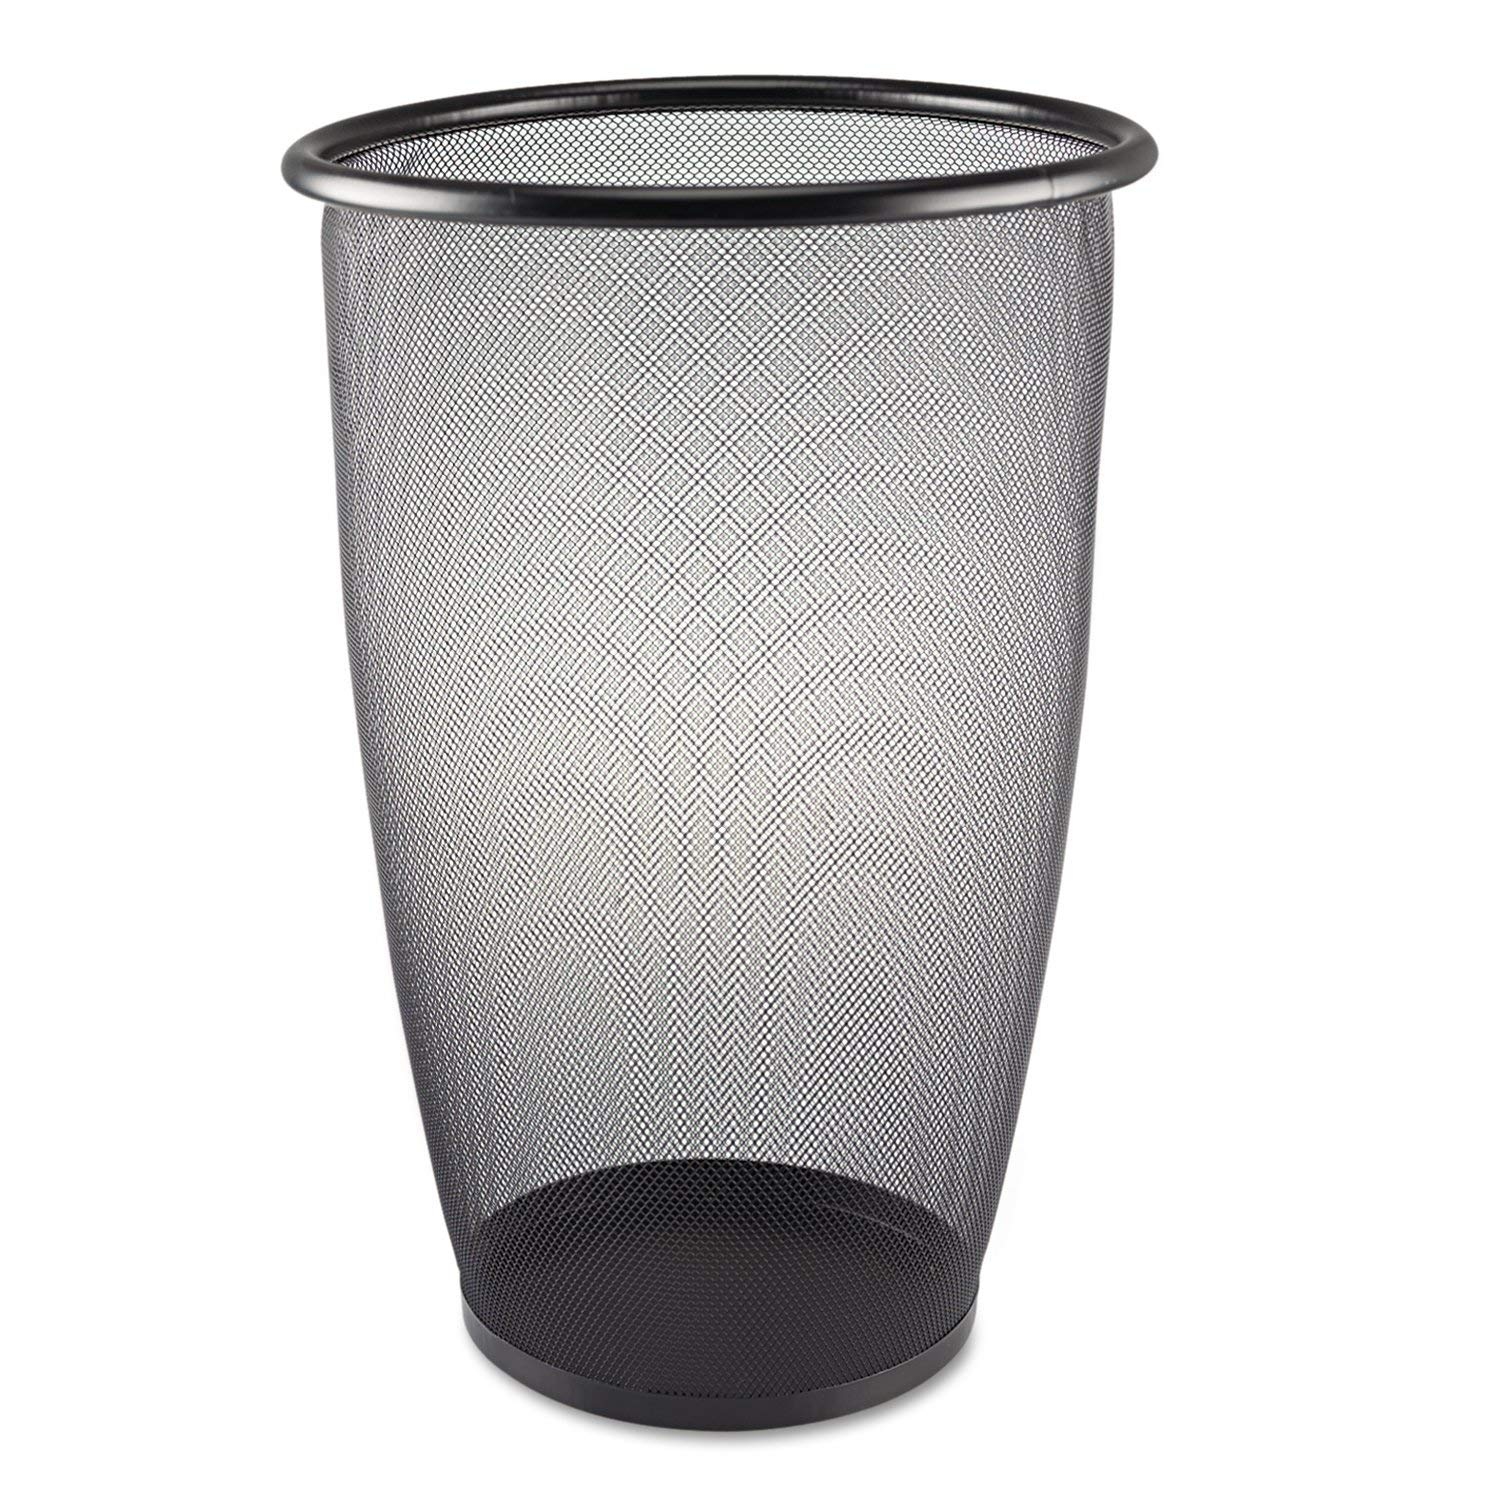 Safco Products 9718BL Onyx Mesh Large Round Wastebasket, 9-Gallon, Black